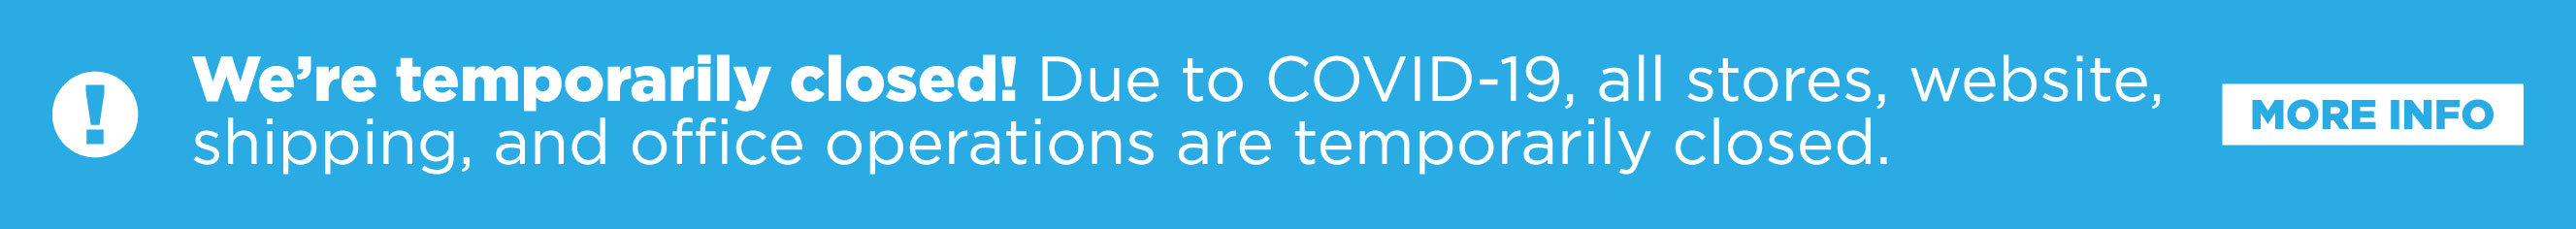 Covid-19 Update: We will be temporarily closing our physical locations at the ned of business on Friday 3/20/20